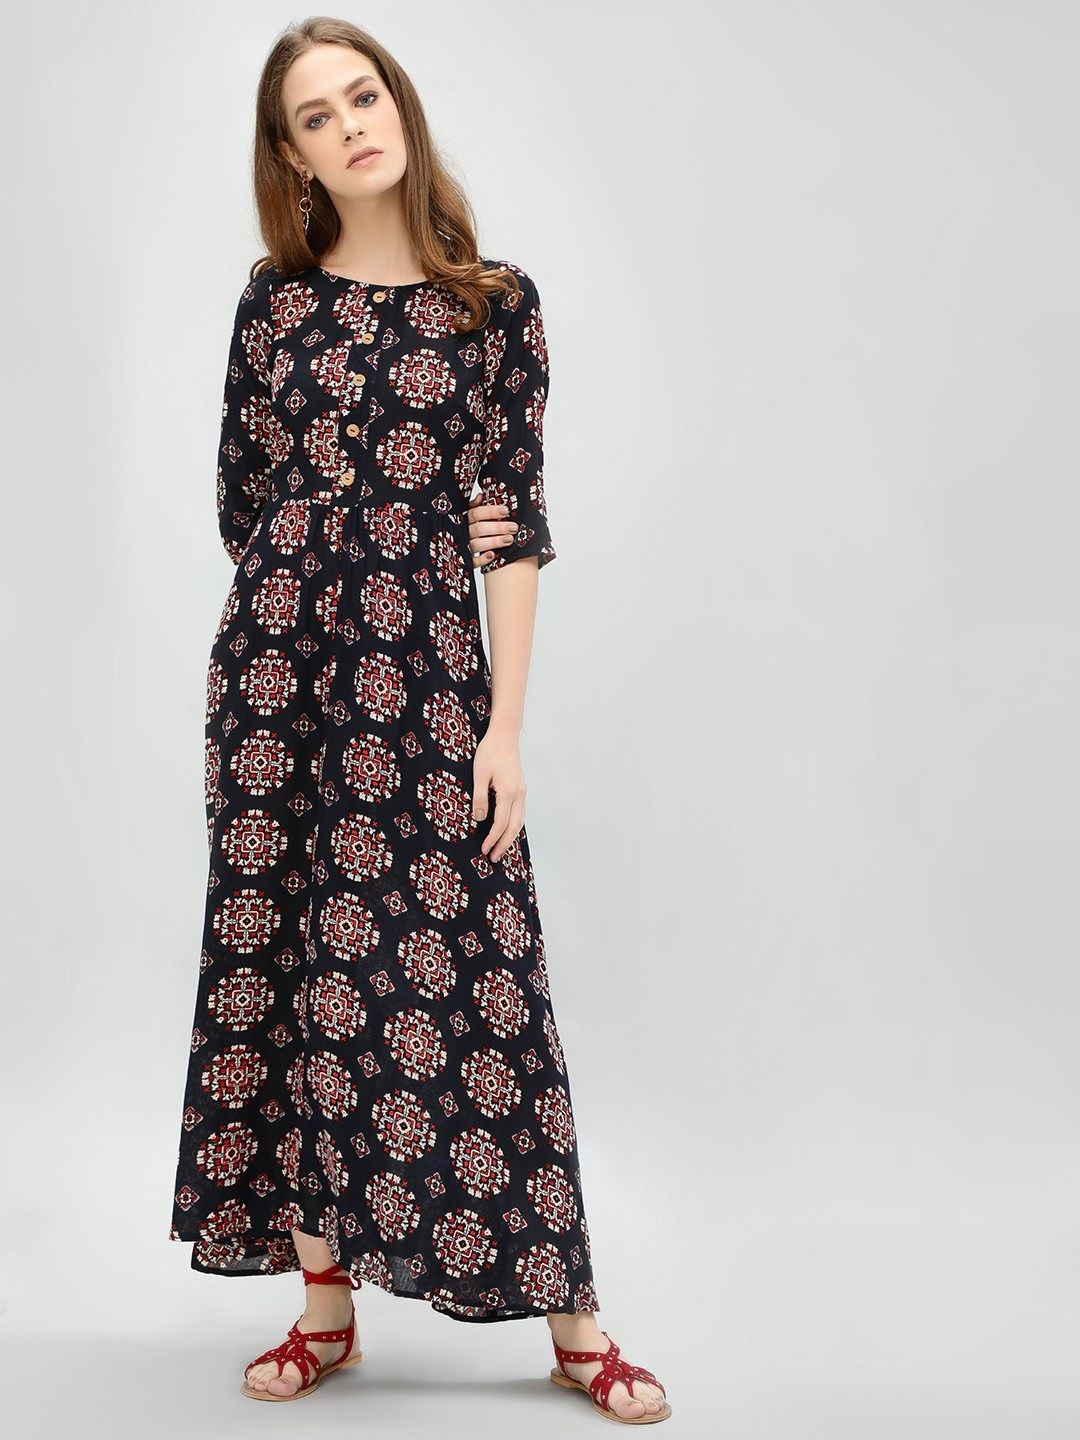 Kisscoast Multi Printed Flare Maxi Dress 1